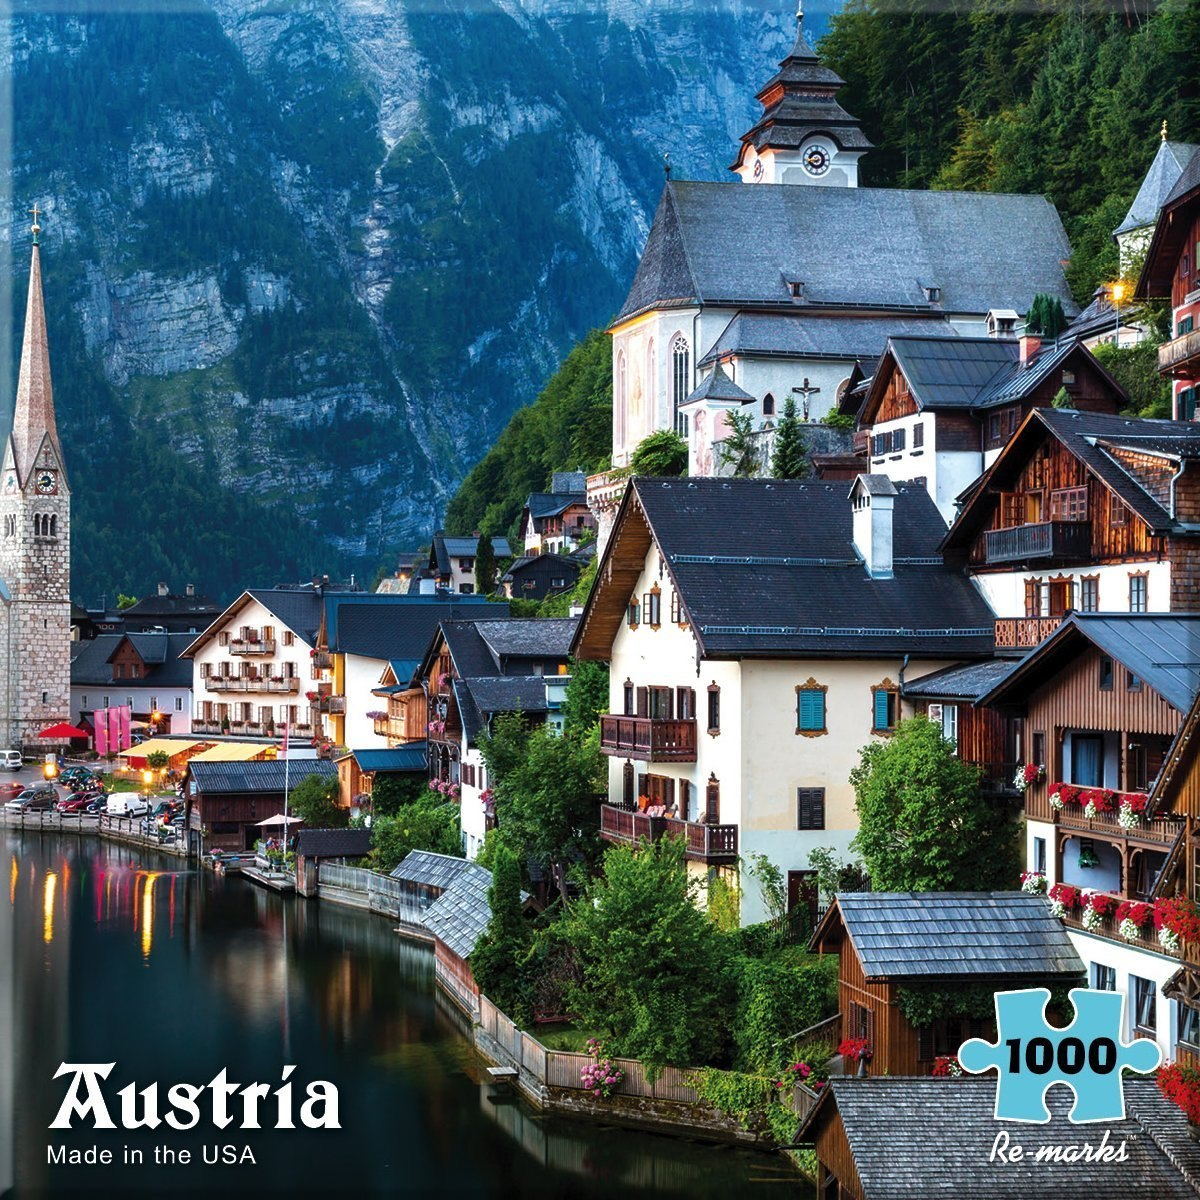 Austria - 1000pc Jigsaw Puzzle By Re-marks  			  					NEW